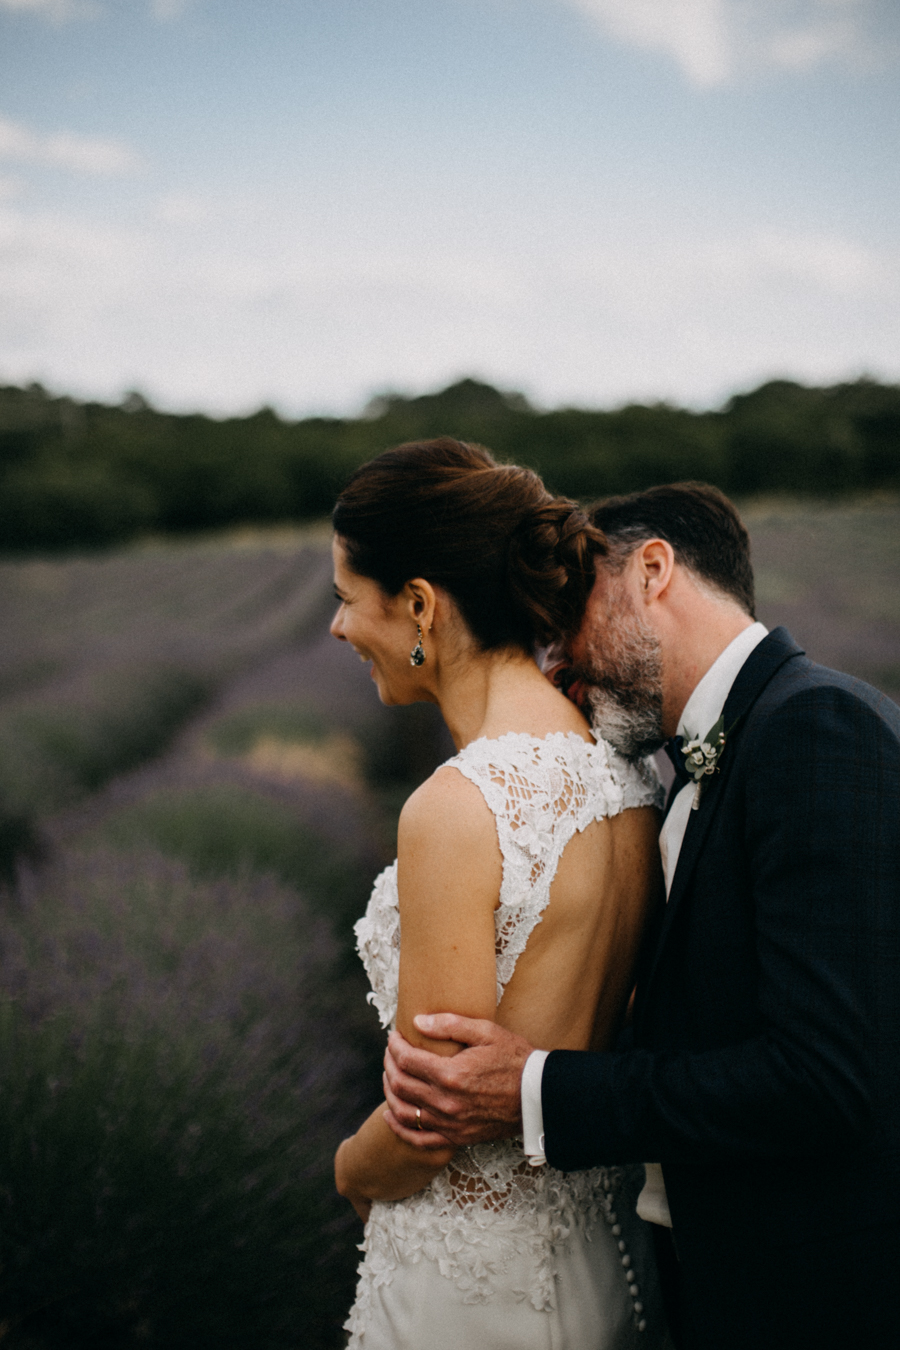 Photographe mariage seance photo wedding reportage couple love session domaine de patras provence-101